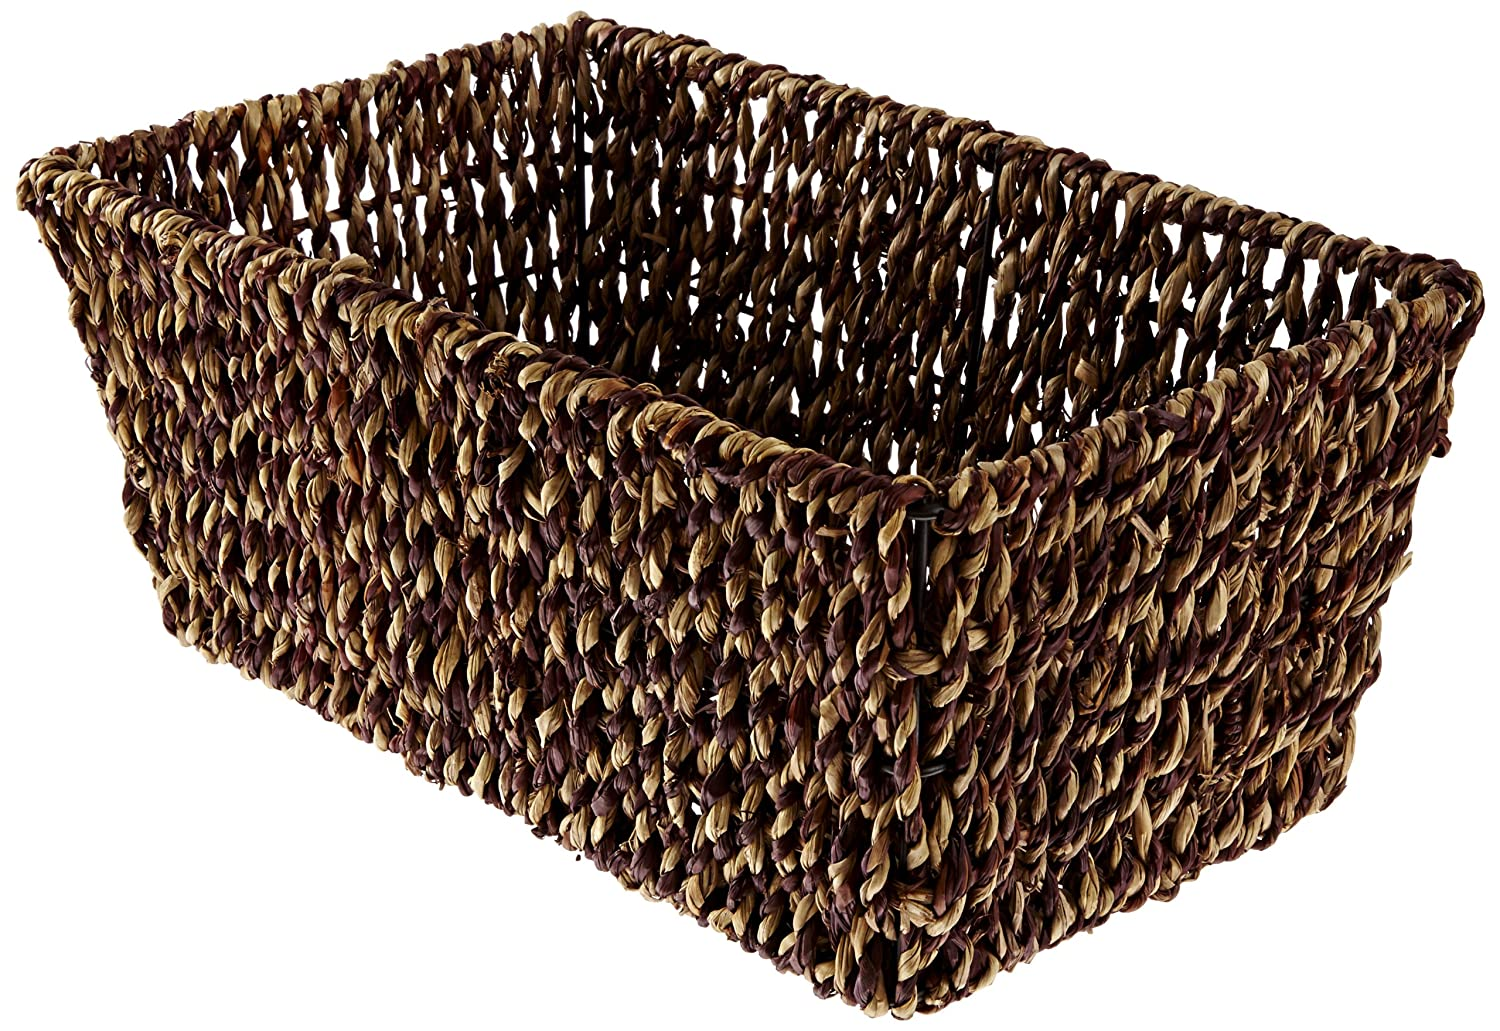 Hoffmaster BSK2151A Seagrass Basket, fits folded guest towels 4-1/2 inches by 8-1/2 inches, actual basket size 10 inches long by 6-1/8 inches wide by 4-3/8 inches tall Hoffmaster Group Inc.